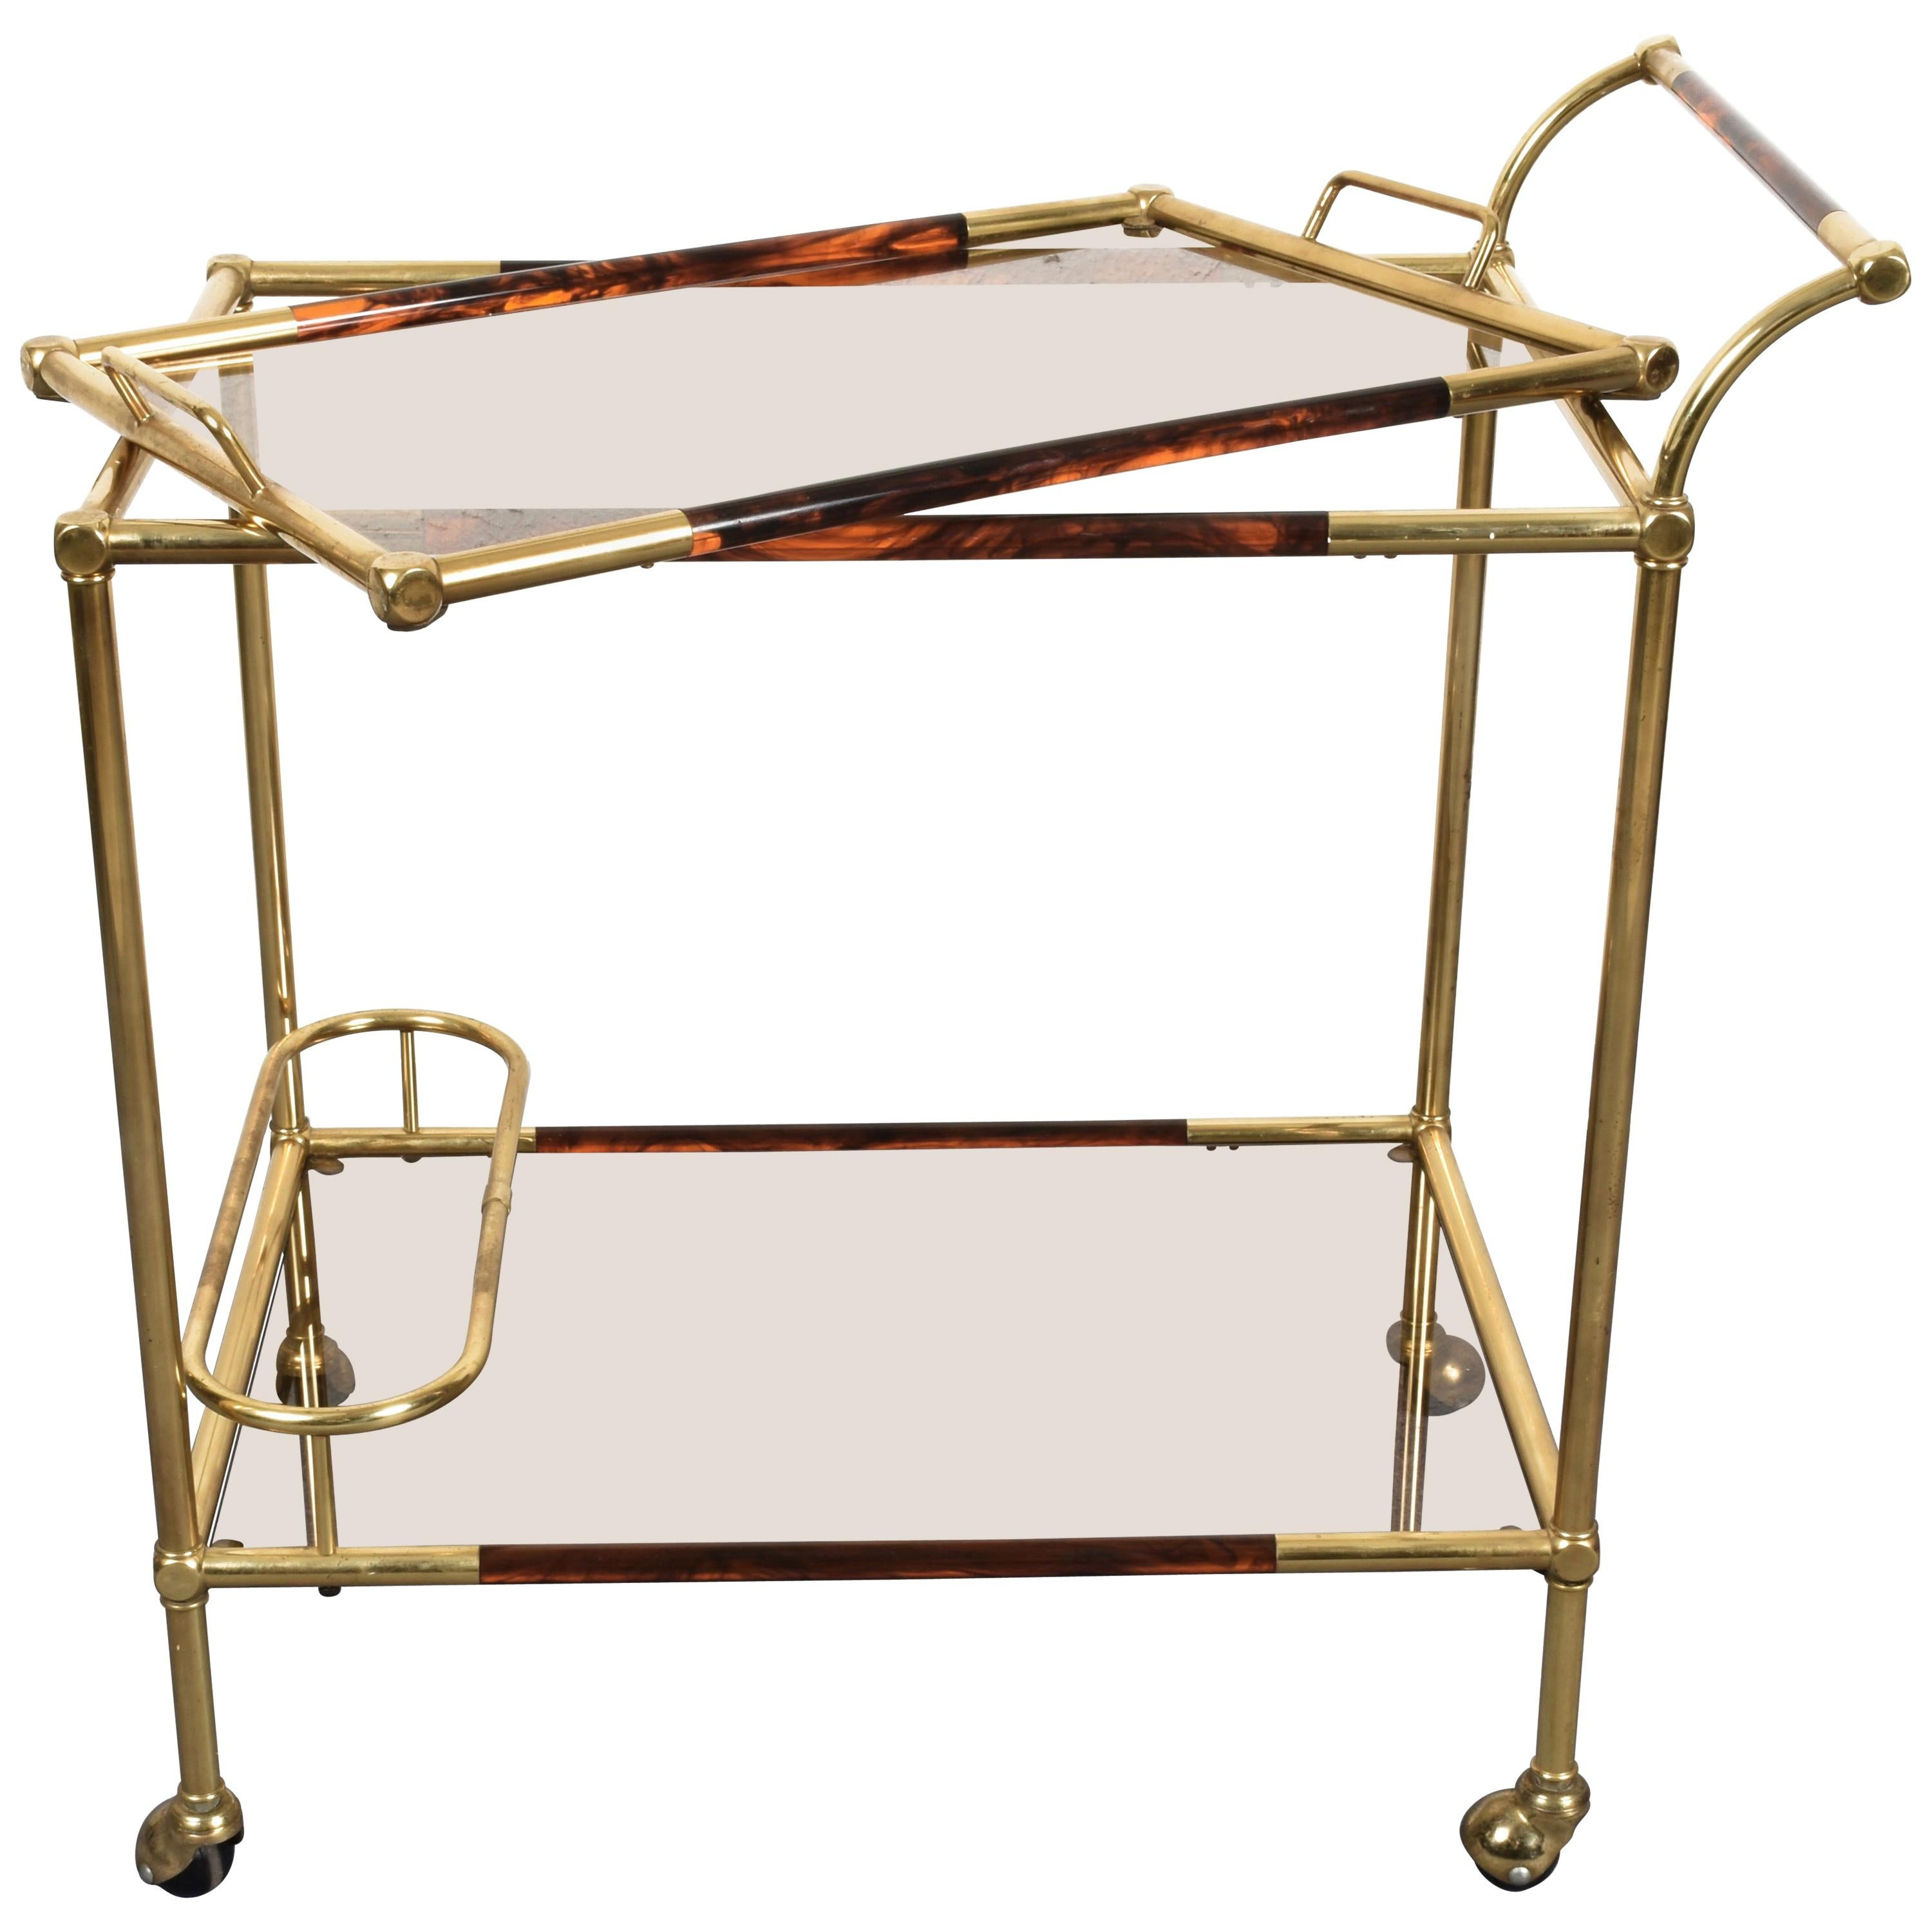 Willy Rizzo Trolley with Service Tray Brass and Lucite Tortoise, Italy, 1980s